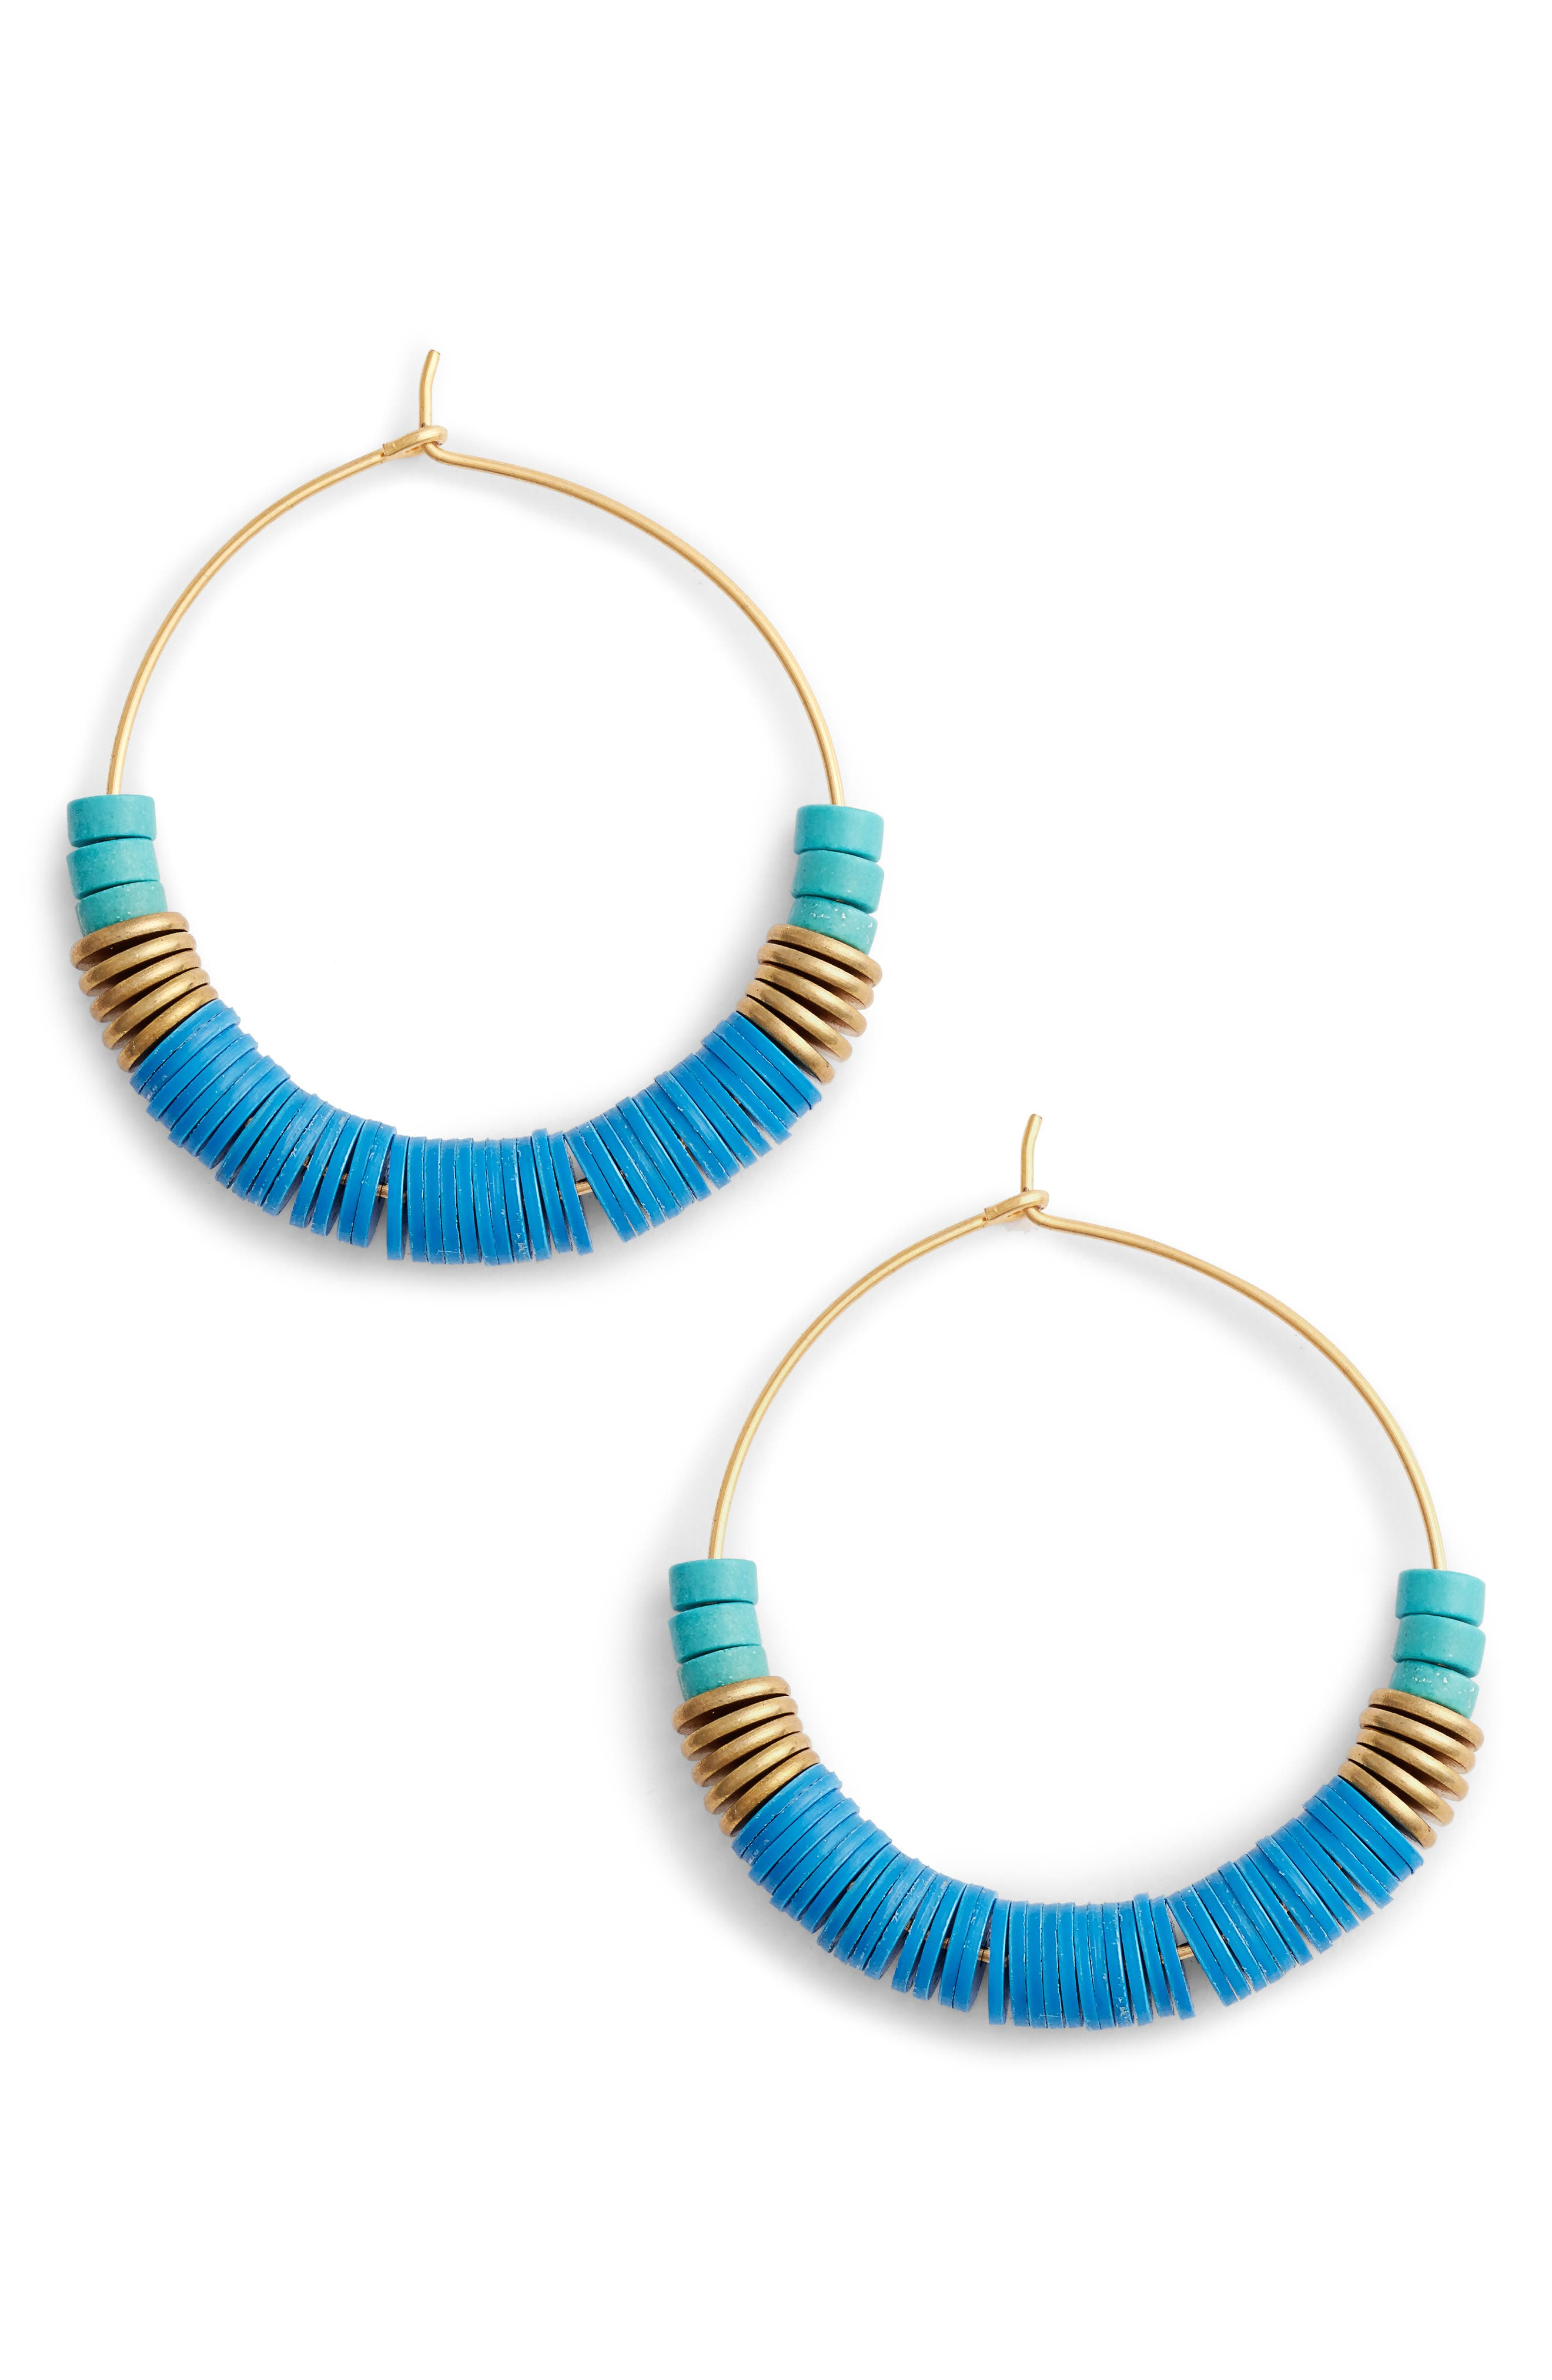 Rylee Hoop Earrings,                             Main thumbnail 1, color,                             Blue/ Gold